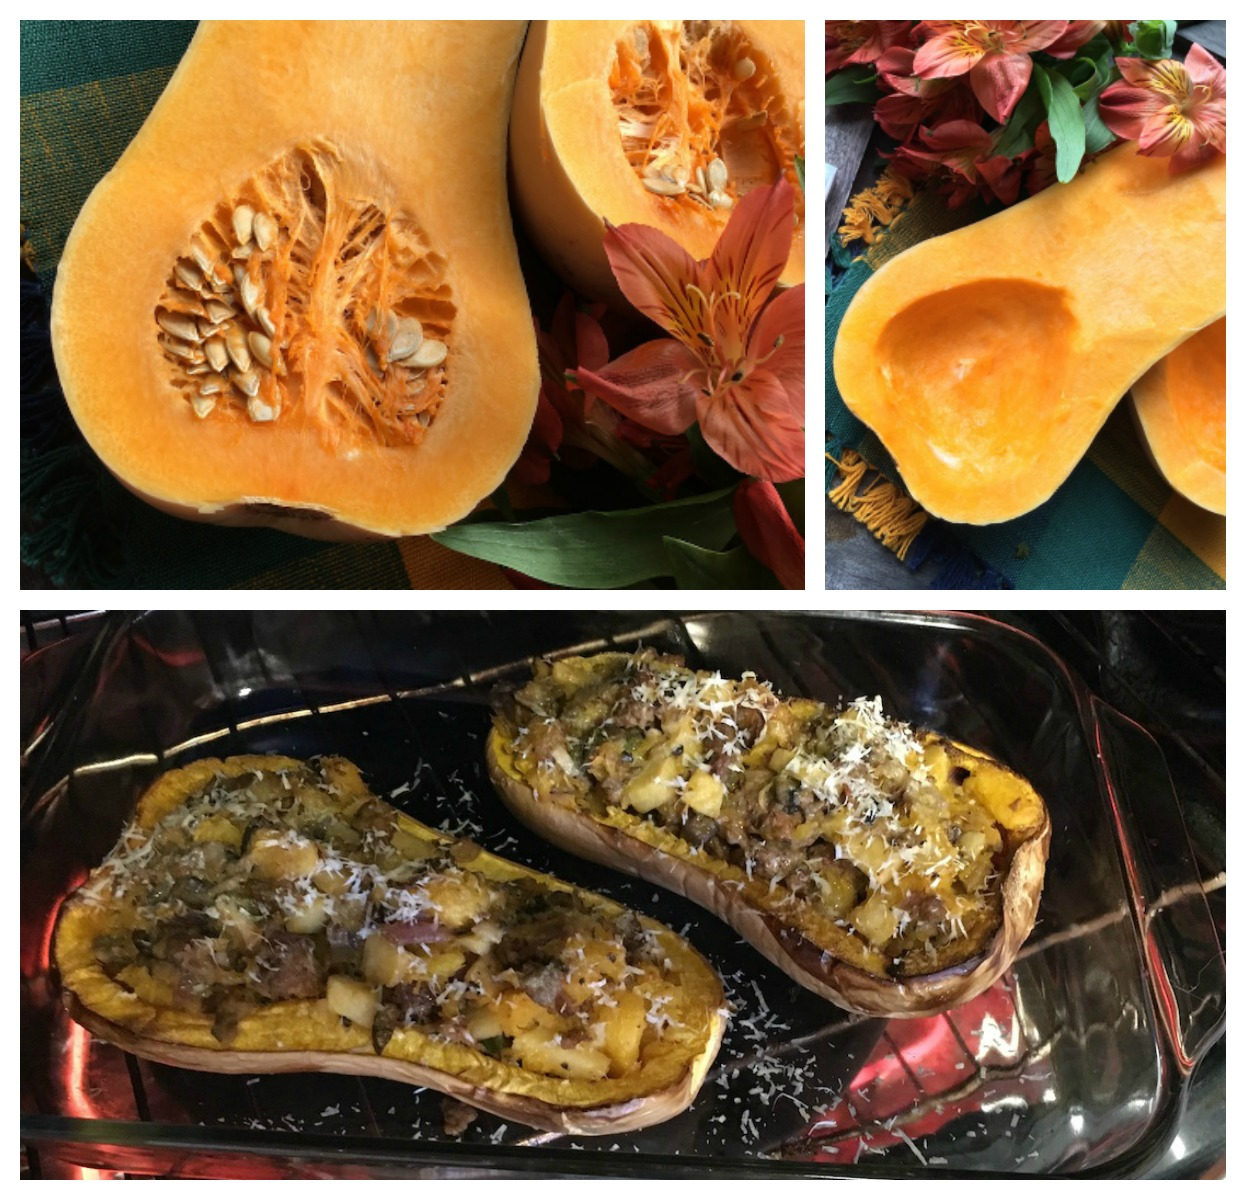 Stuffed Butternut Squash with Apple, Sausage and Portobello collage